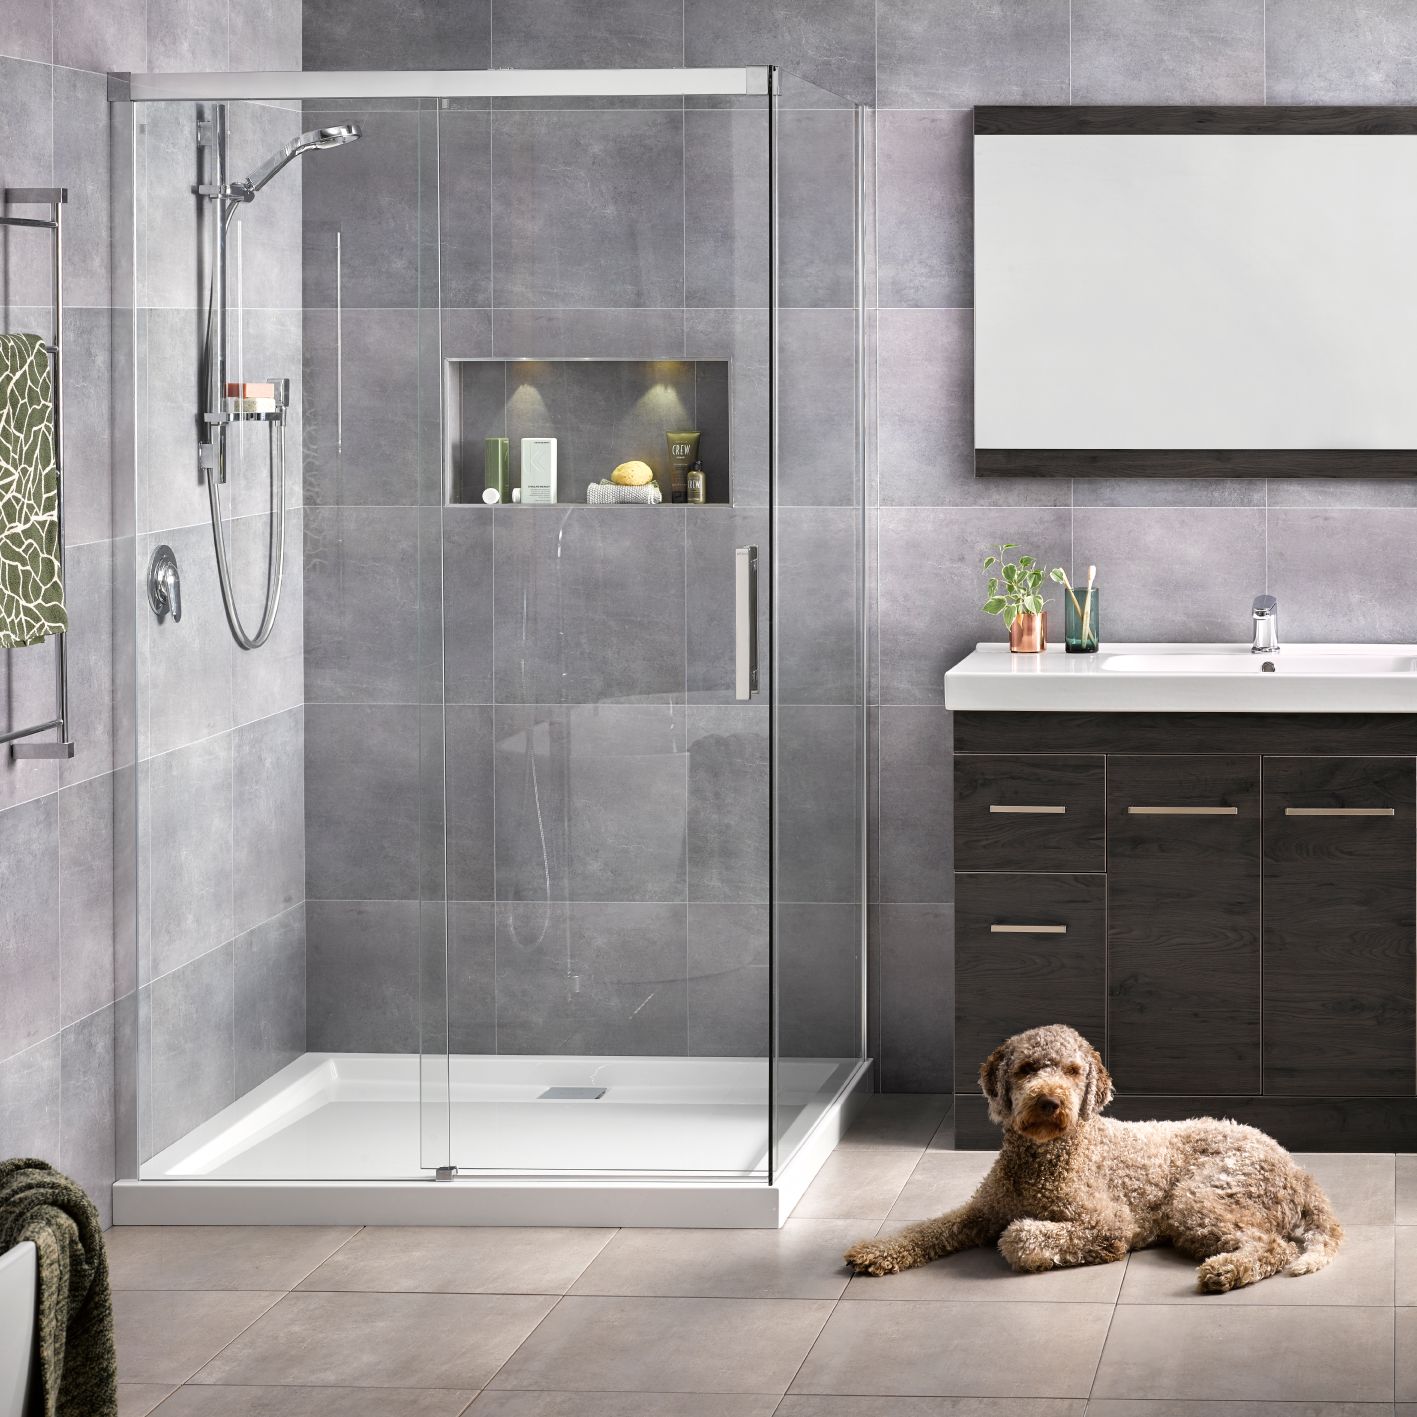 Bathroom design hamilton nz - Motio 1200x1000 2 Sided Shower On Tiled Wall Rrp 2830